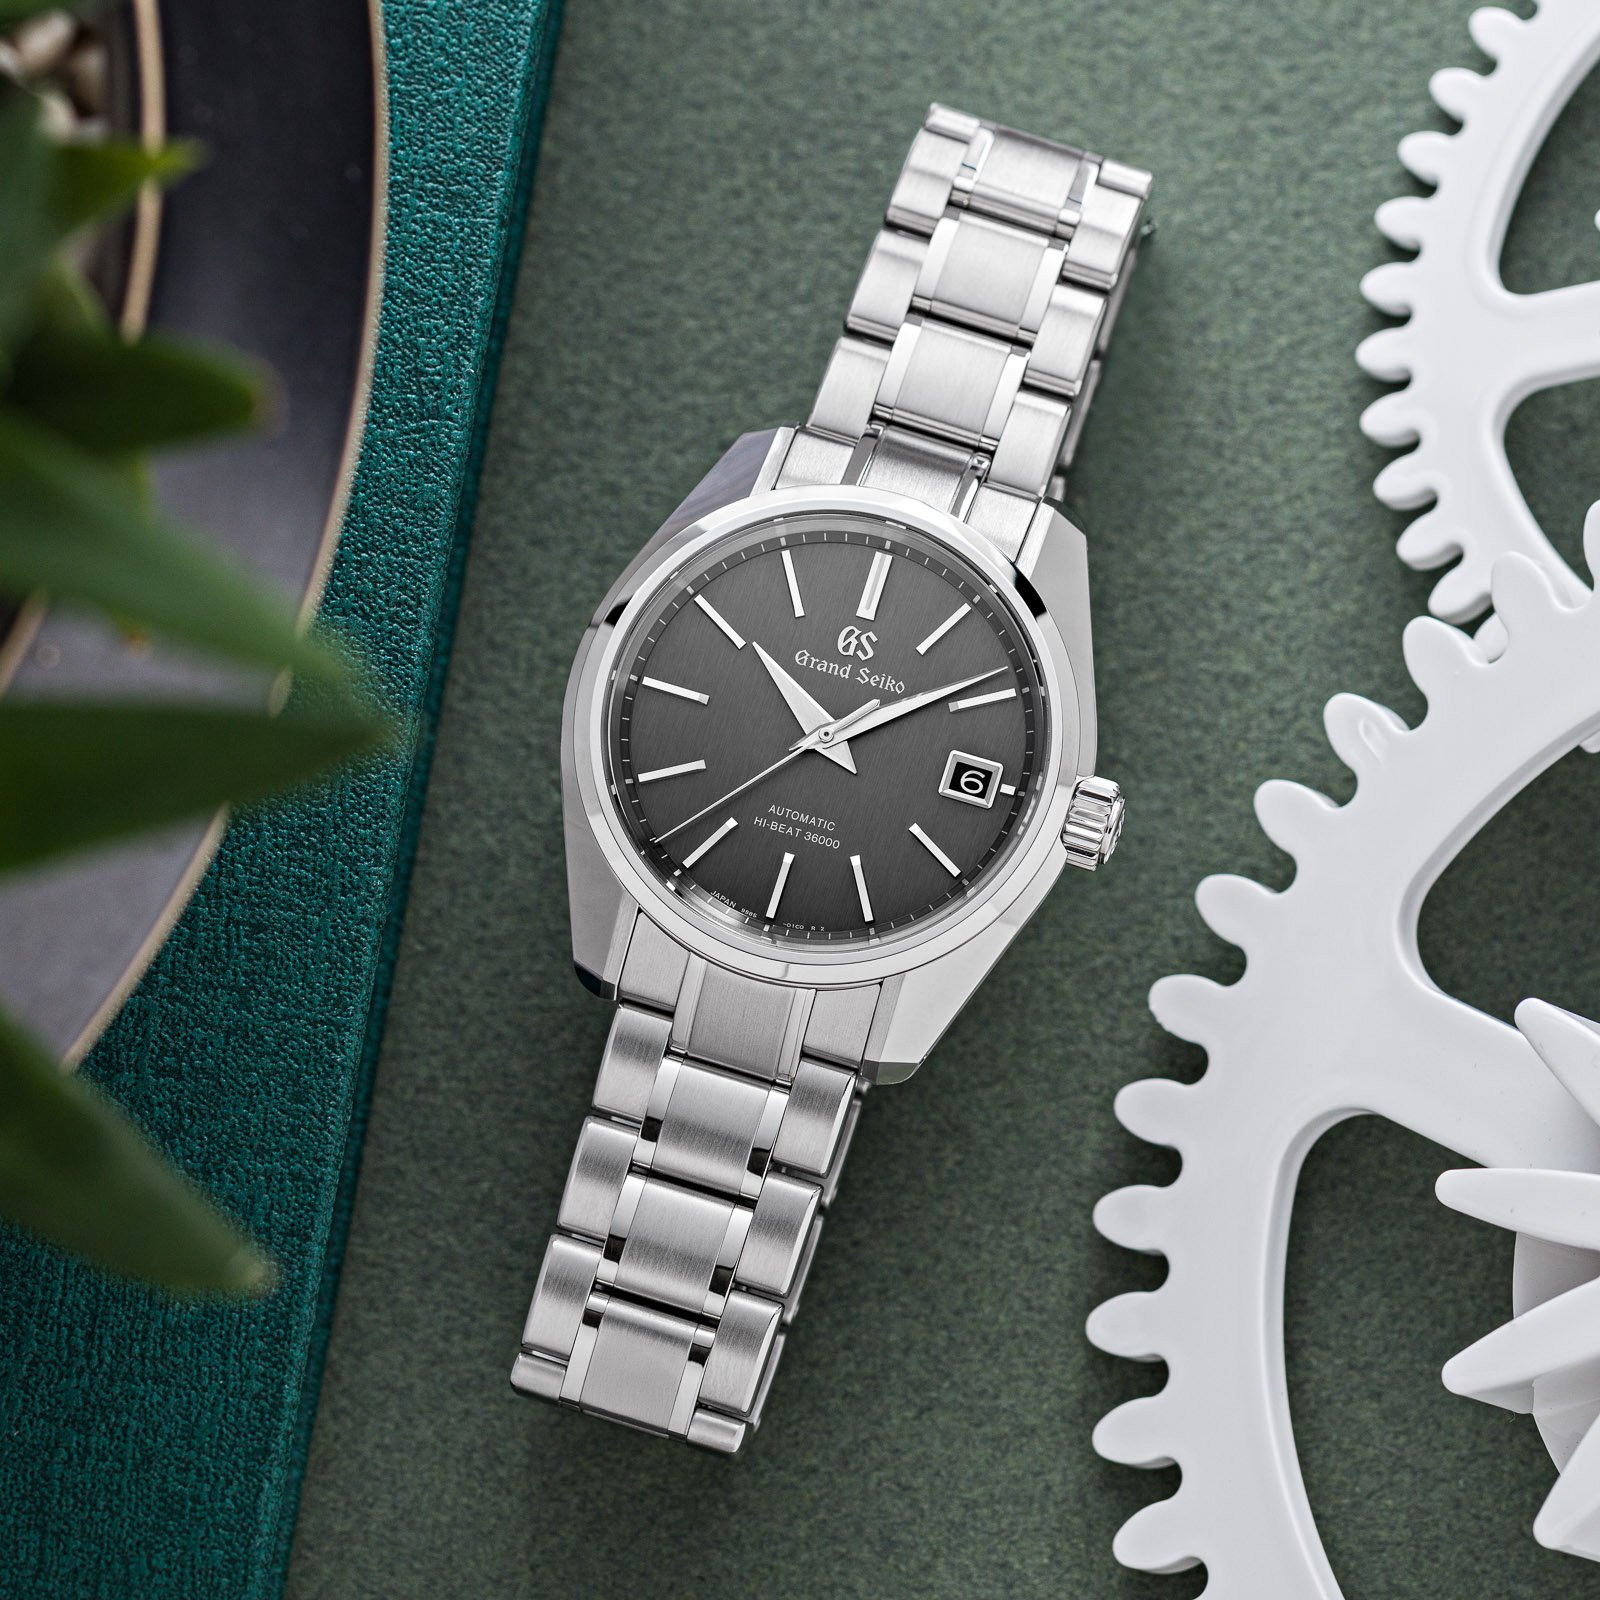 Dark gray dial wristwatch with a stainless steel case.